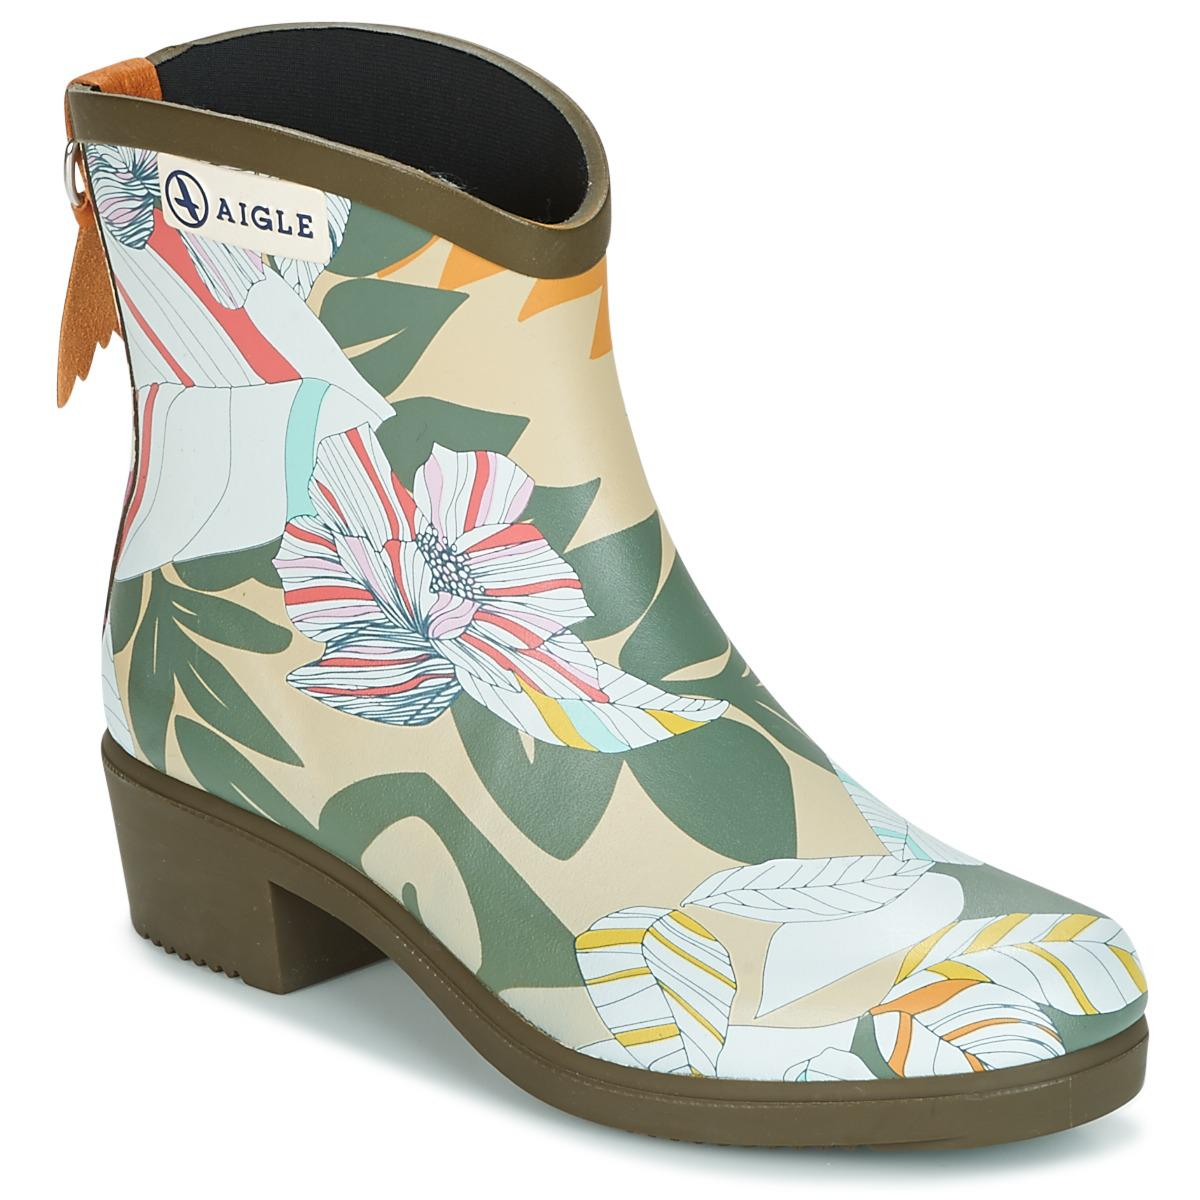 Clearance Real Aigle MISS JULIETTE BOTTILLON PRINT women's Wellington Boots in Wiki Cheap Price Outlet Sast Fashion Style Cheap Online W562sQyHKa